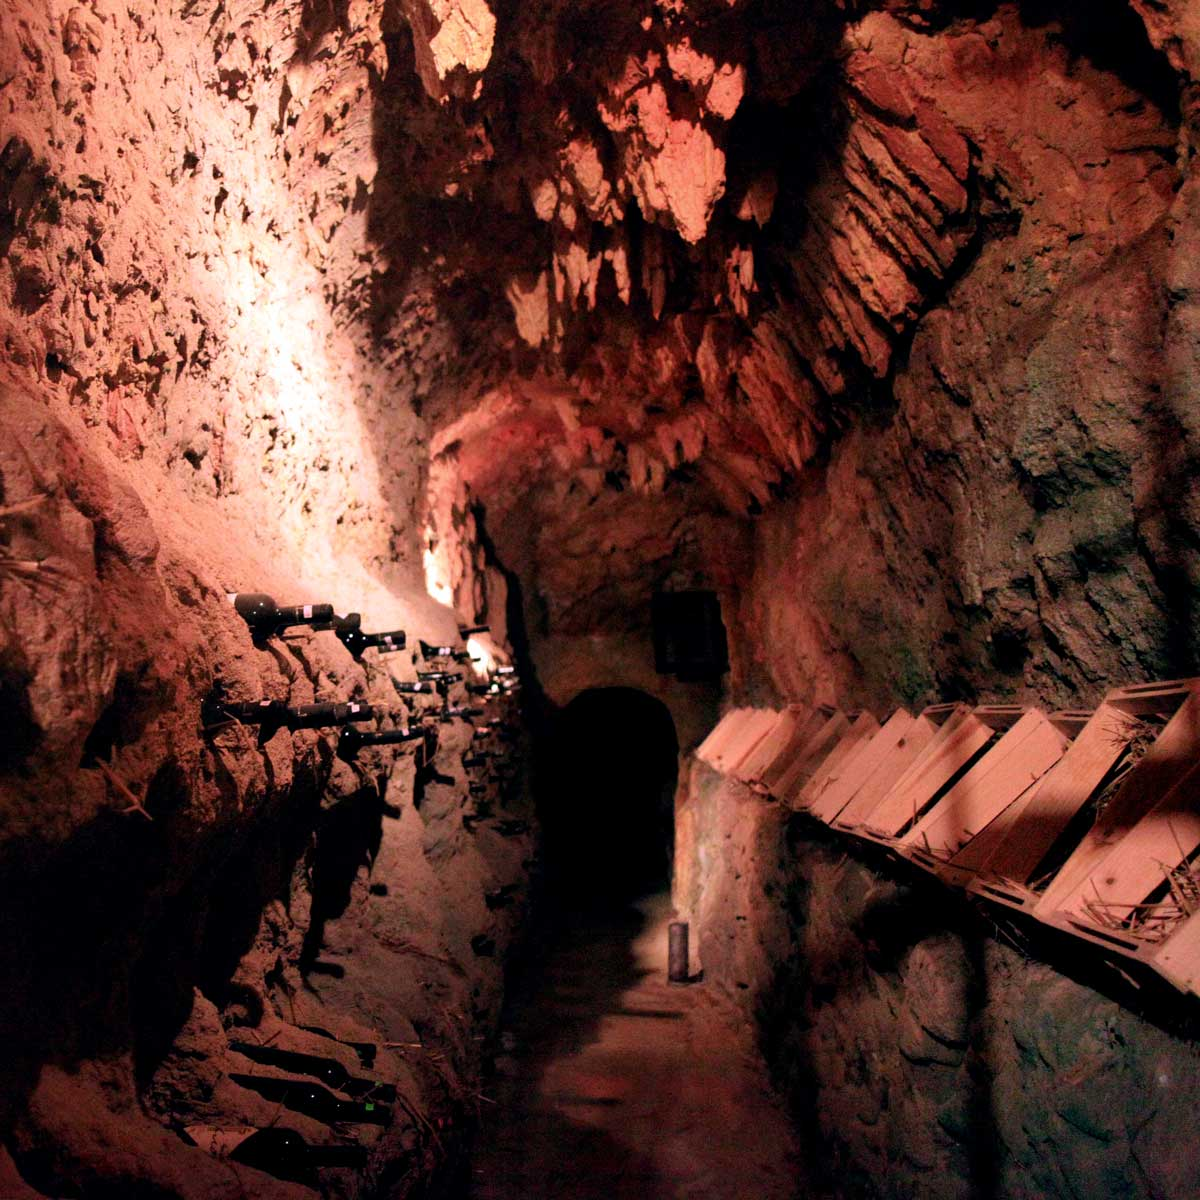 UNDERGROUND CAVERNS - COOL, DRY & DARK - A PERFECT WAY TO PRESERVE WINE   photo by Ada Kase